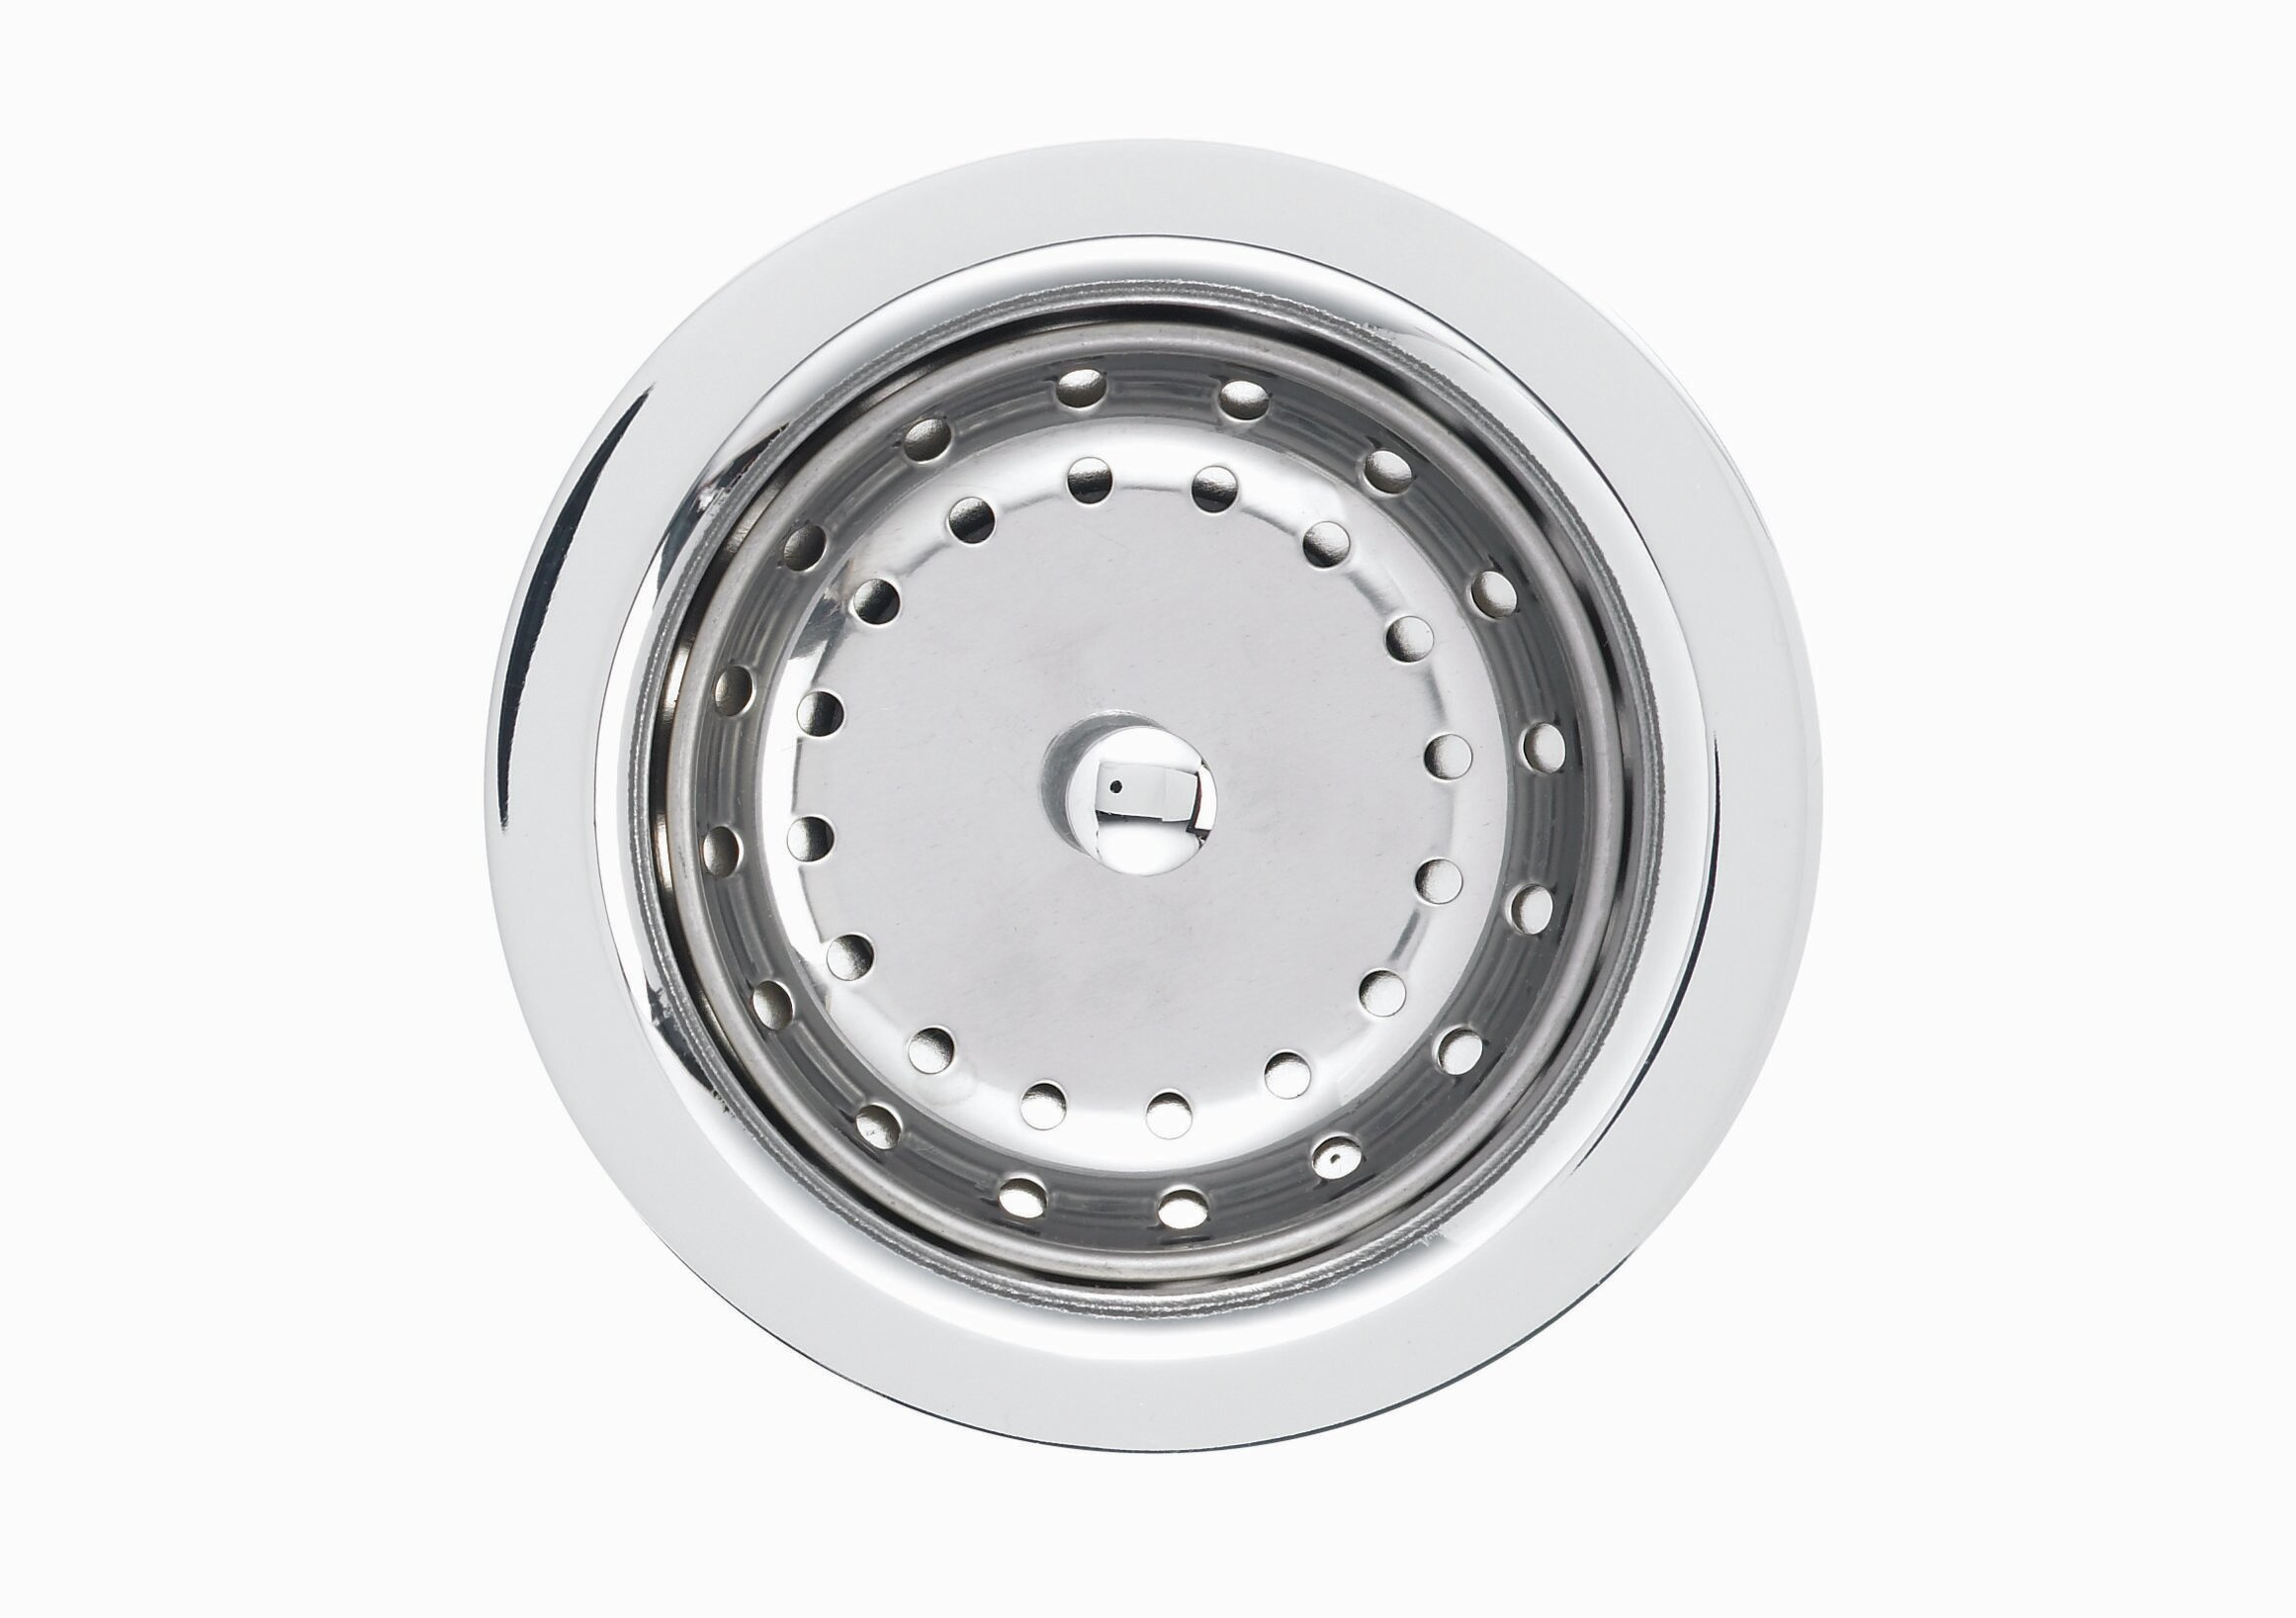 Blanco Deluxe Kitchen Sink Strainer & Reviews